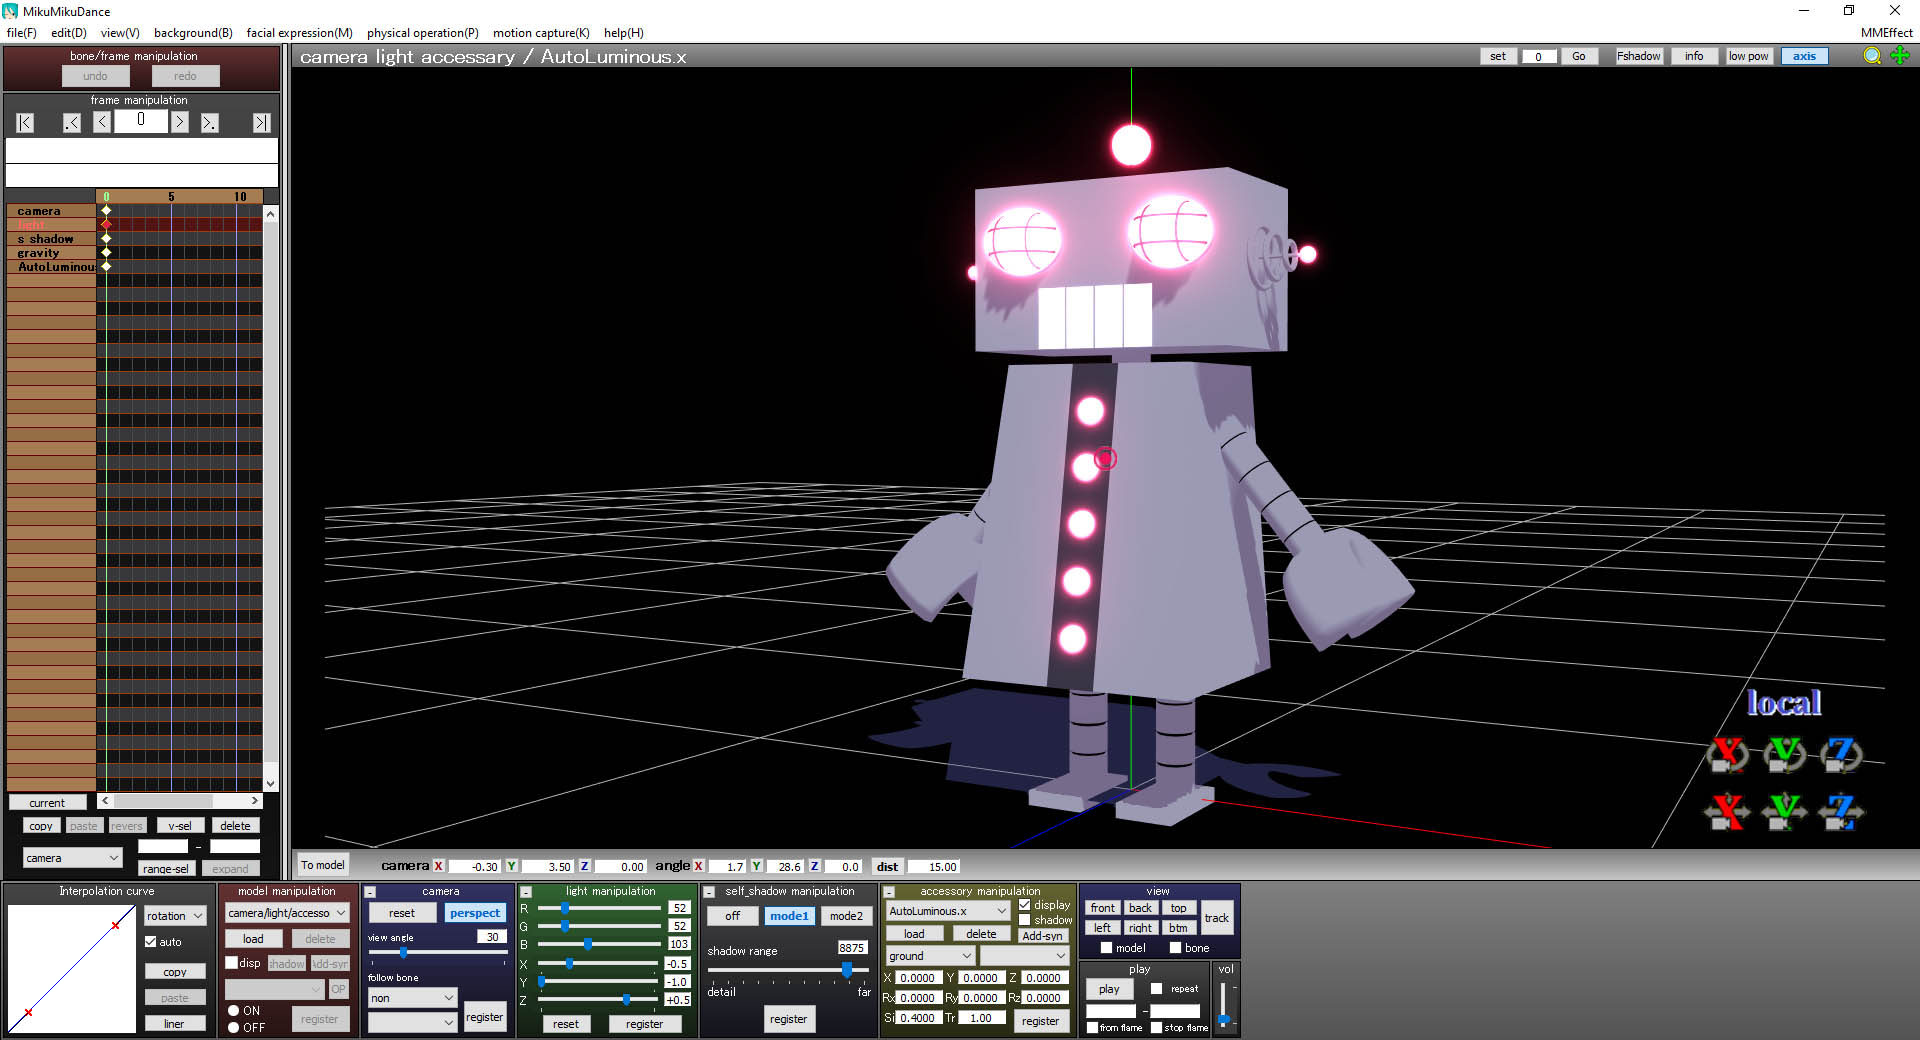 An example of AutoLuminous working with the Eared Robot in MMD